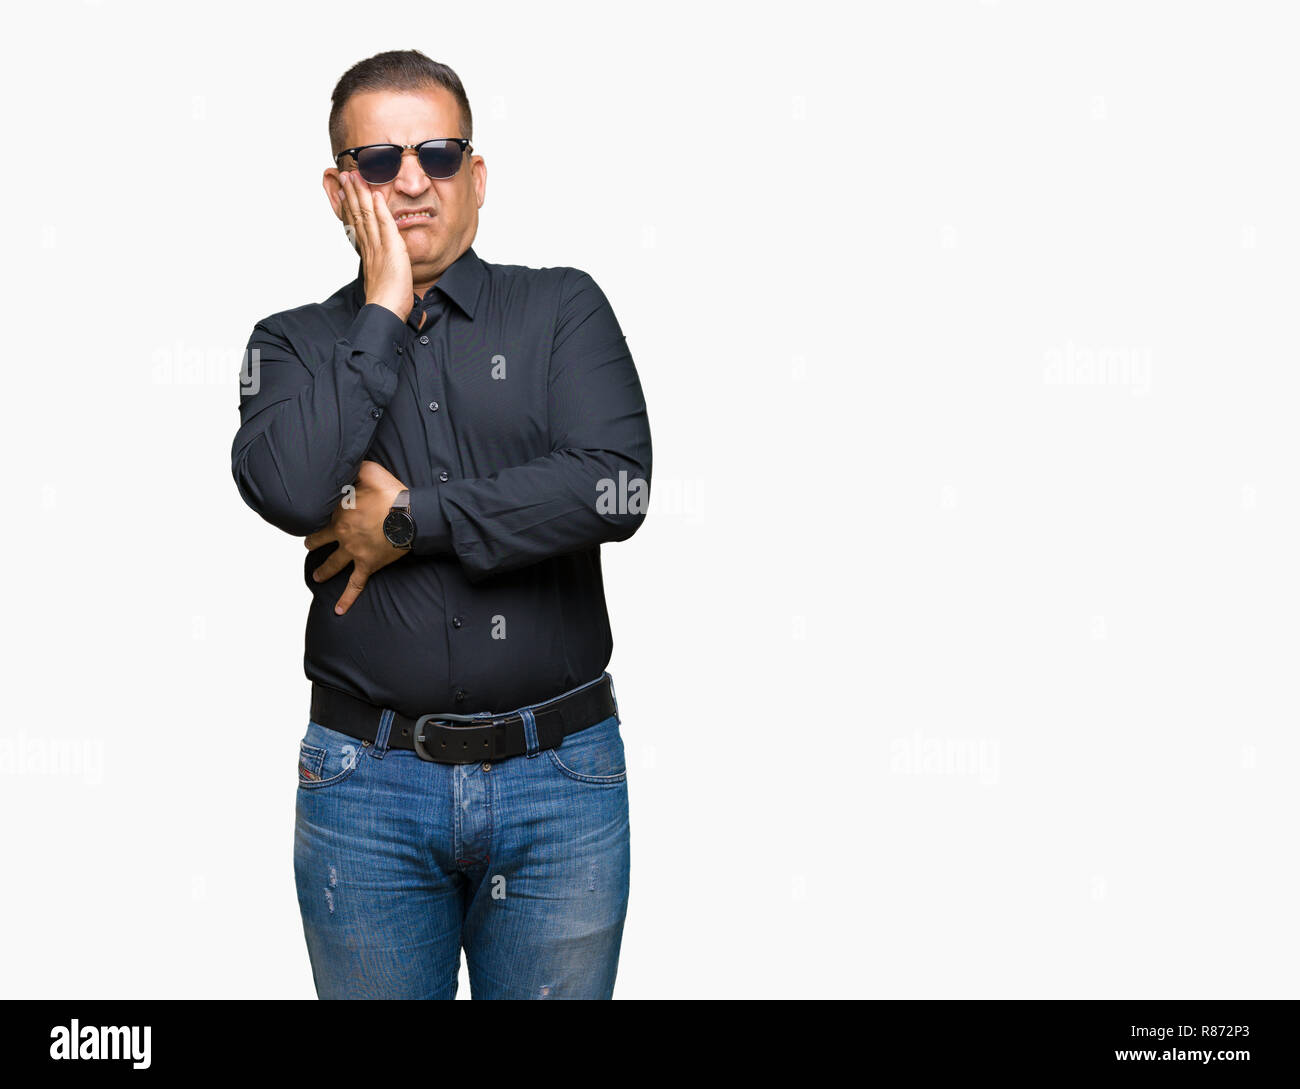 Middle age arab man wearing sunglasses over isolated background thinking looking tired and bored with depression problems with crossed arms. Stock Photo